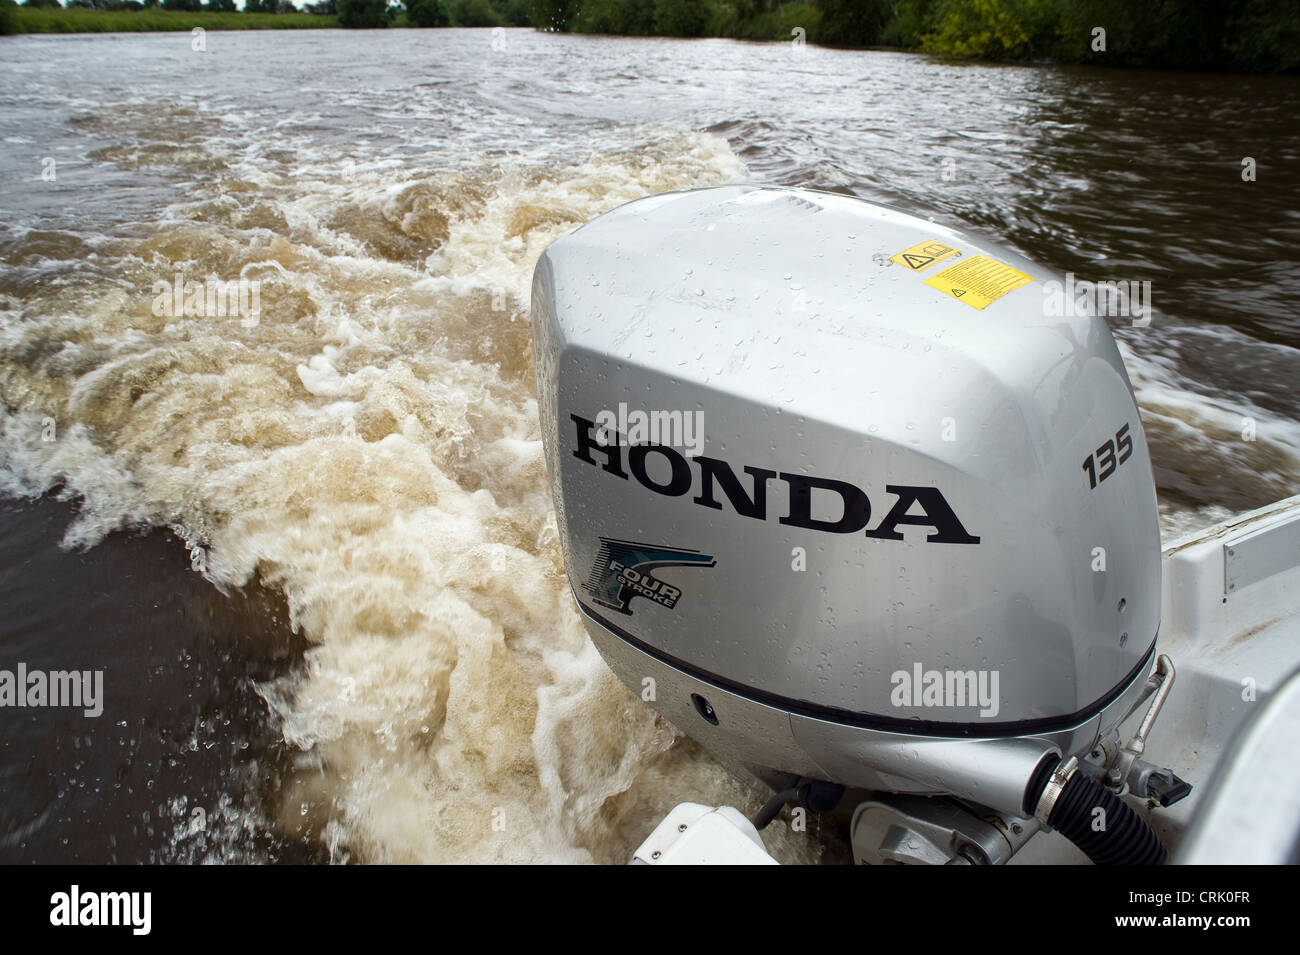 honda reviews outboard motors tradeaboat australia review motor engines boats trade